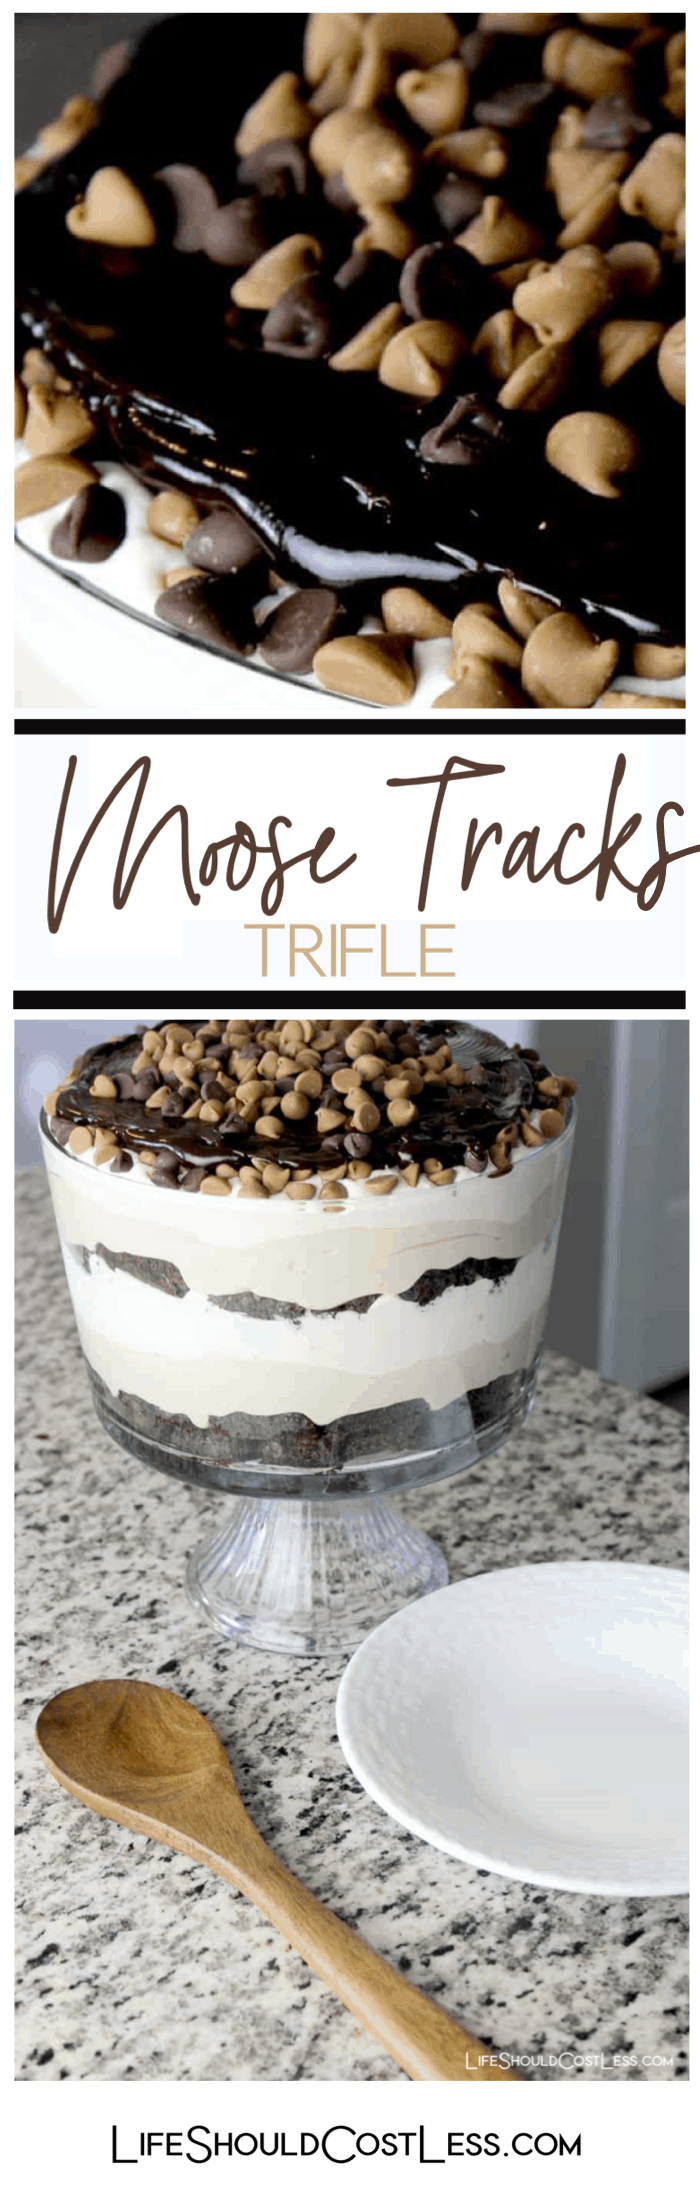 How to make a moose tracks flavored trifle with vanilla mousse and peanut butter mousse and fudge brownies.